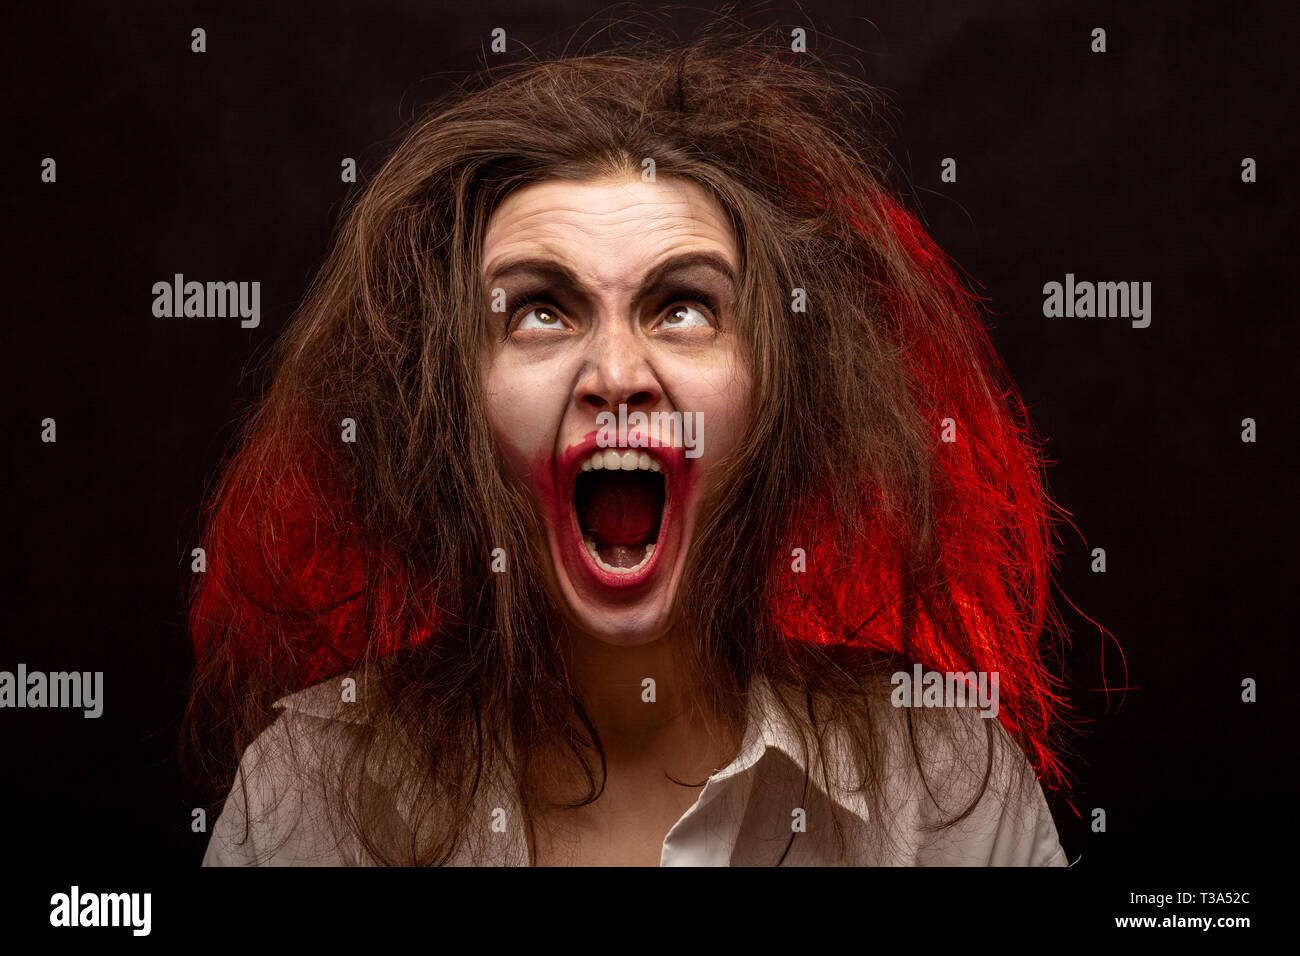 fun crazy young woman with fluffy hair on black background make grimace screaming - Stock Image